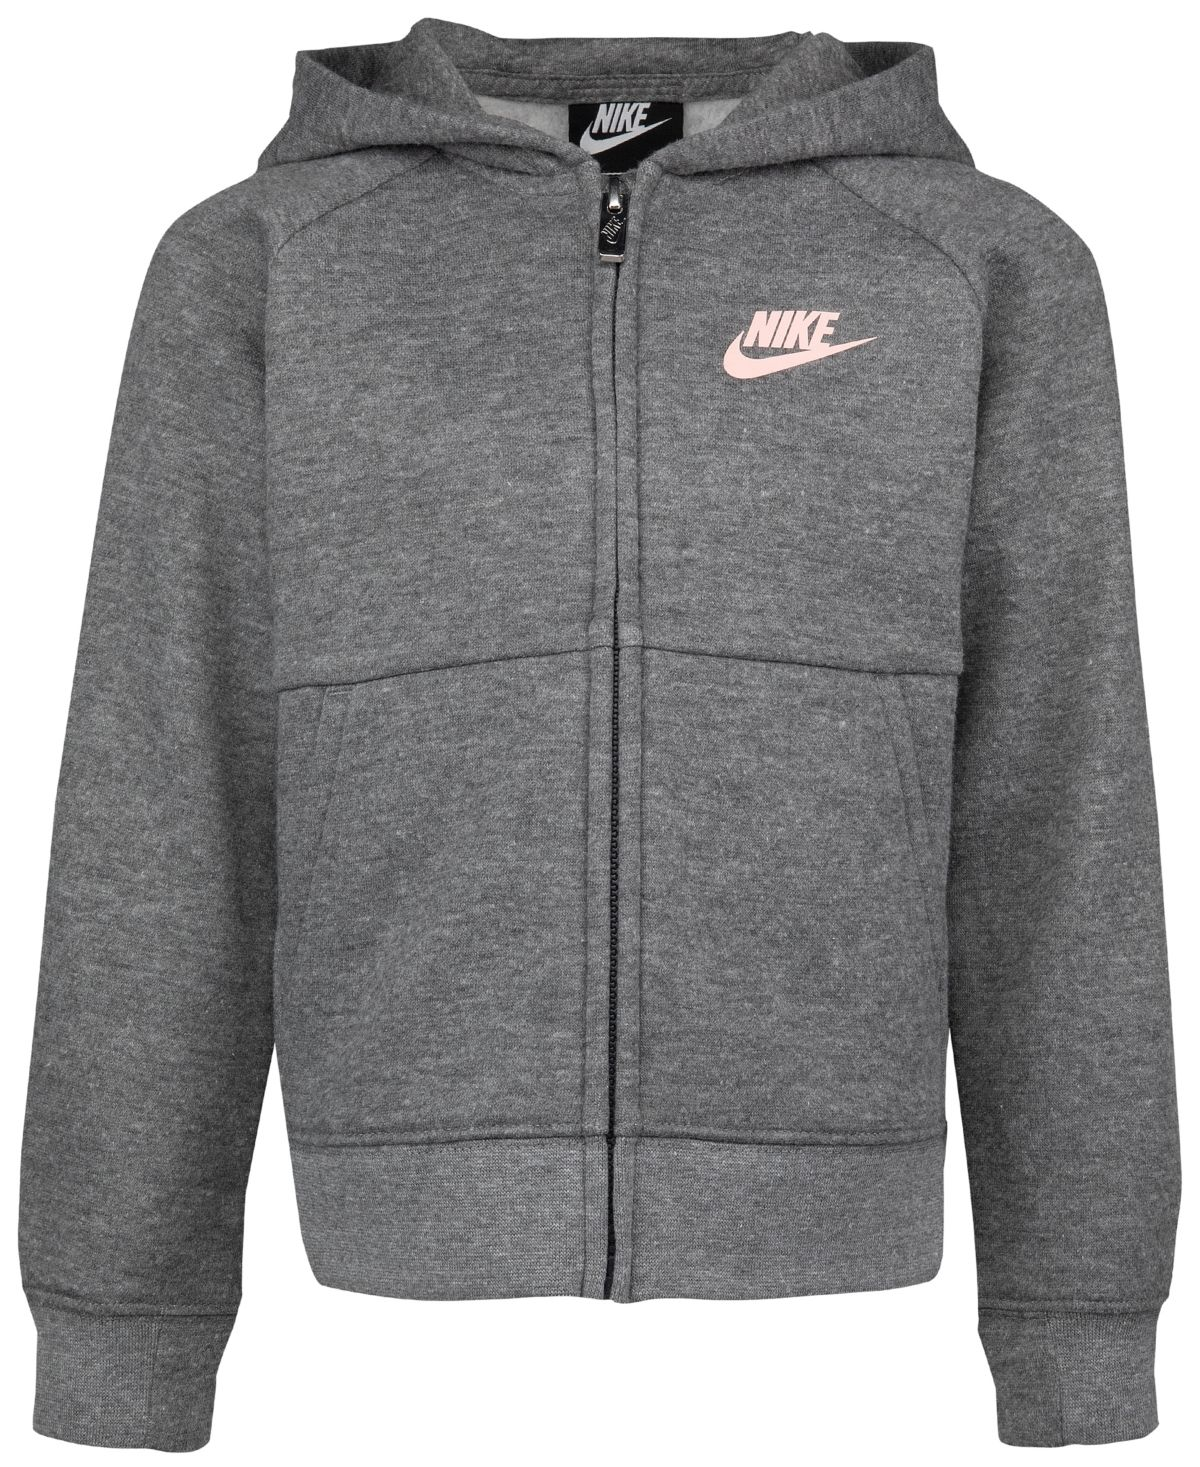 girls nike hoody products for sale   eBay